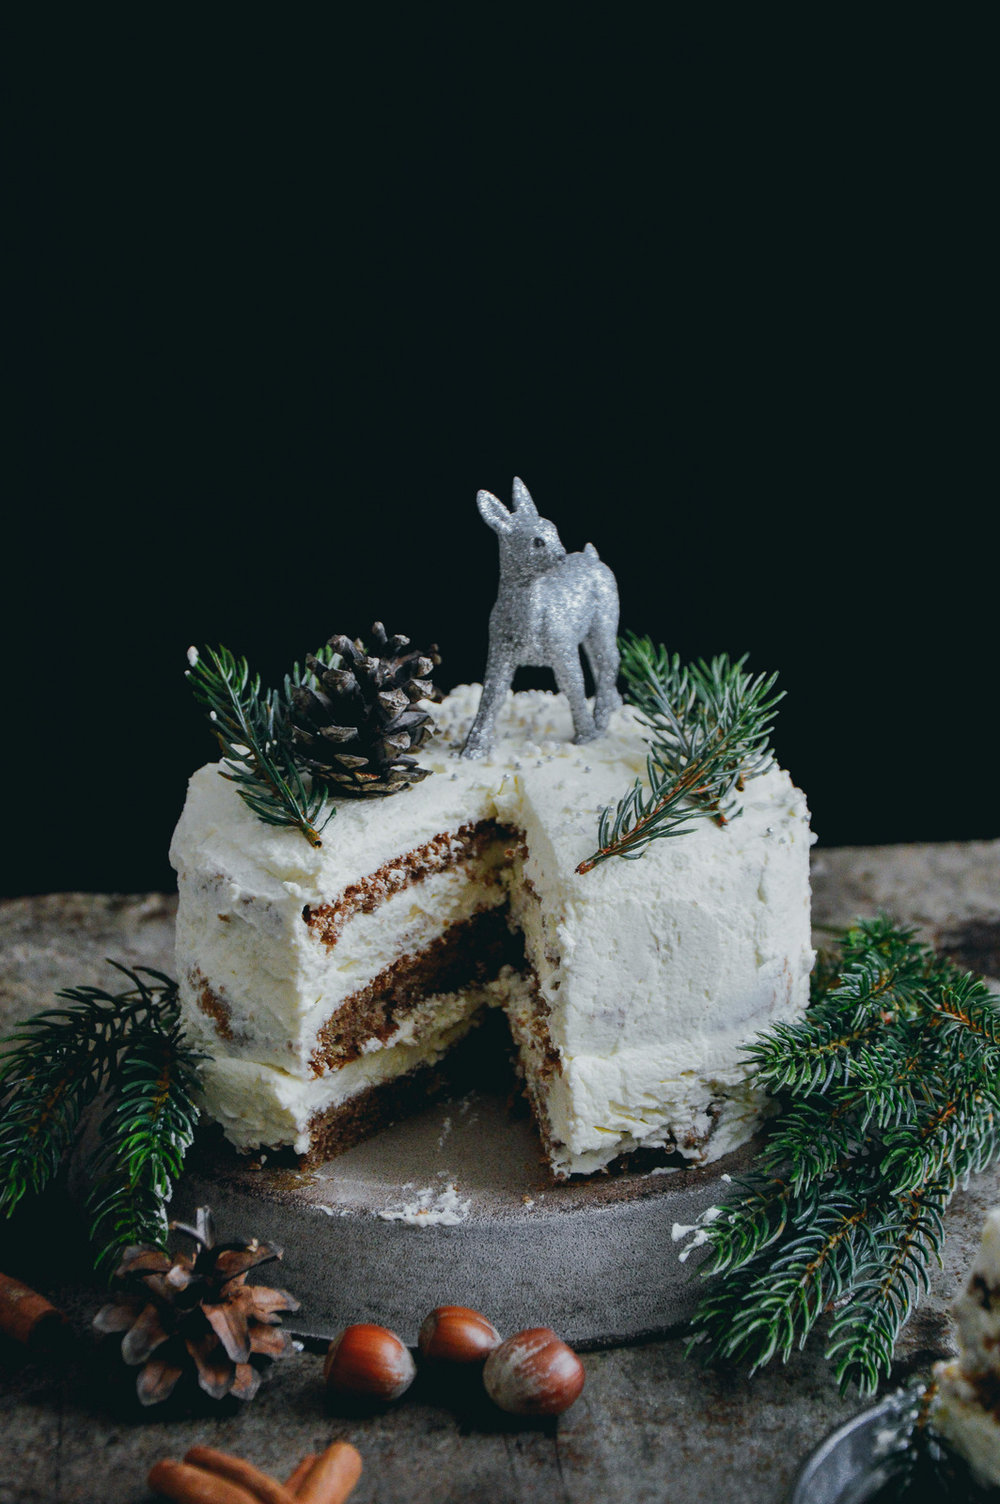 Glutenfree Christmas cake with orange and cinnamon frosting | The Nordic Kitchen